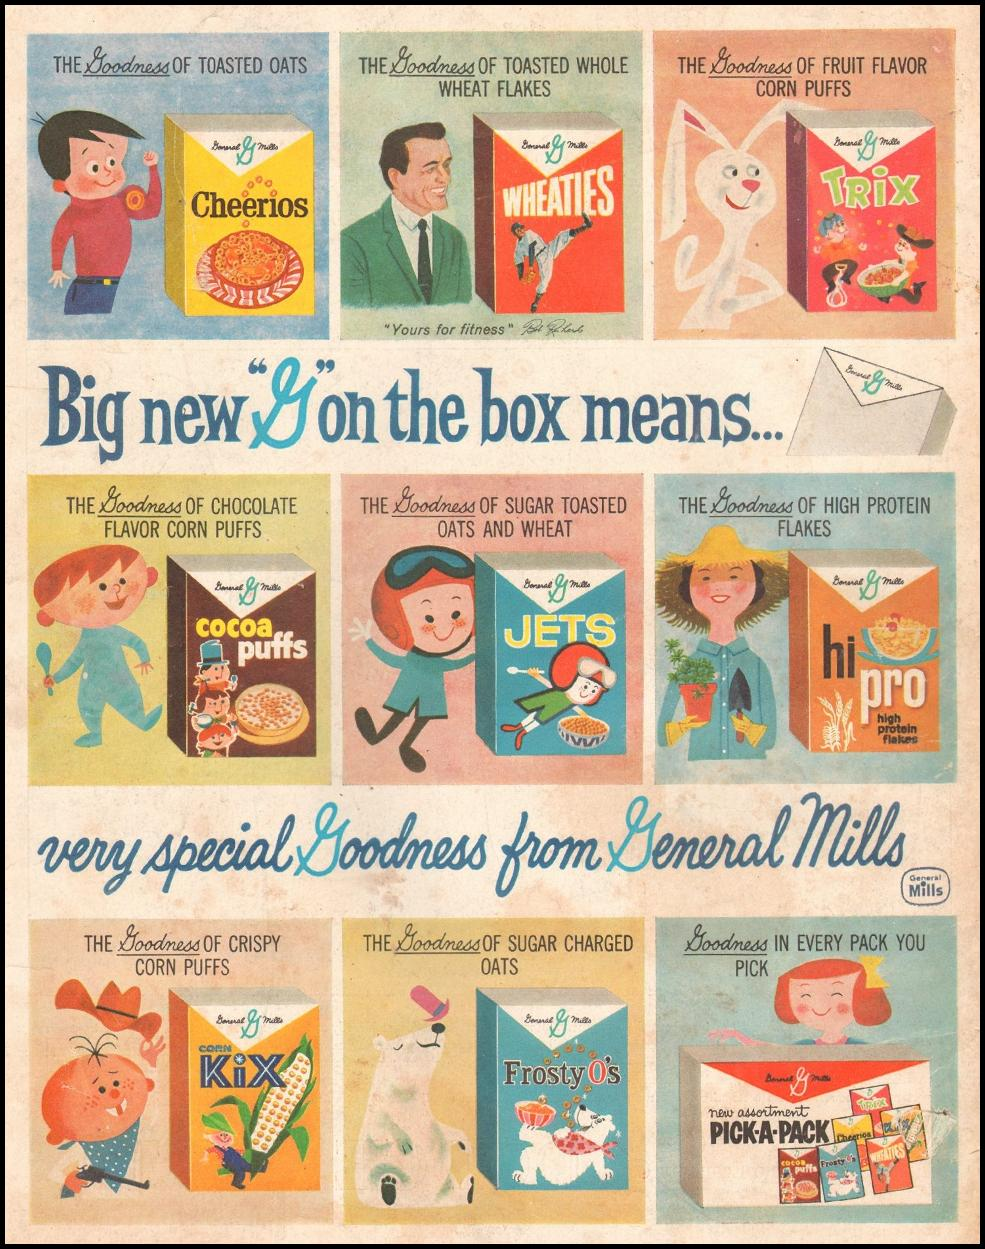 GENERAL MILLS CEREALS SATURDAY EVENING POST 06/11/1960 BACK COVER